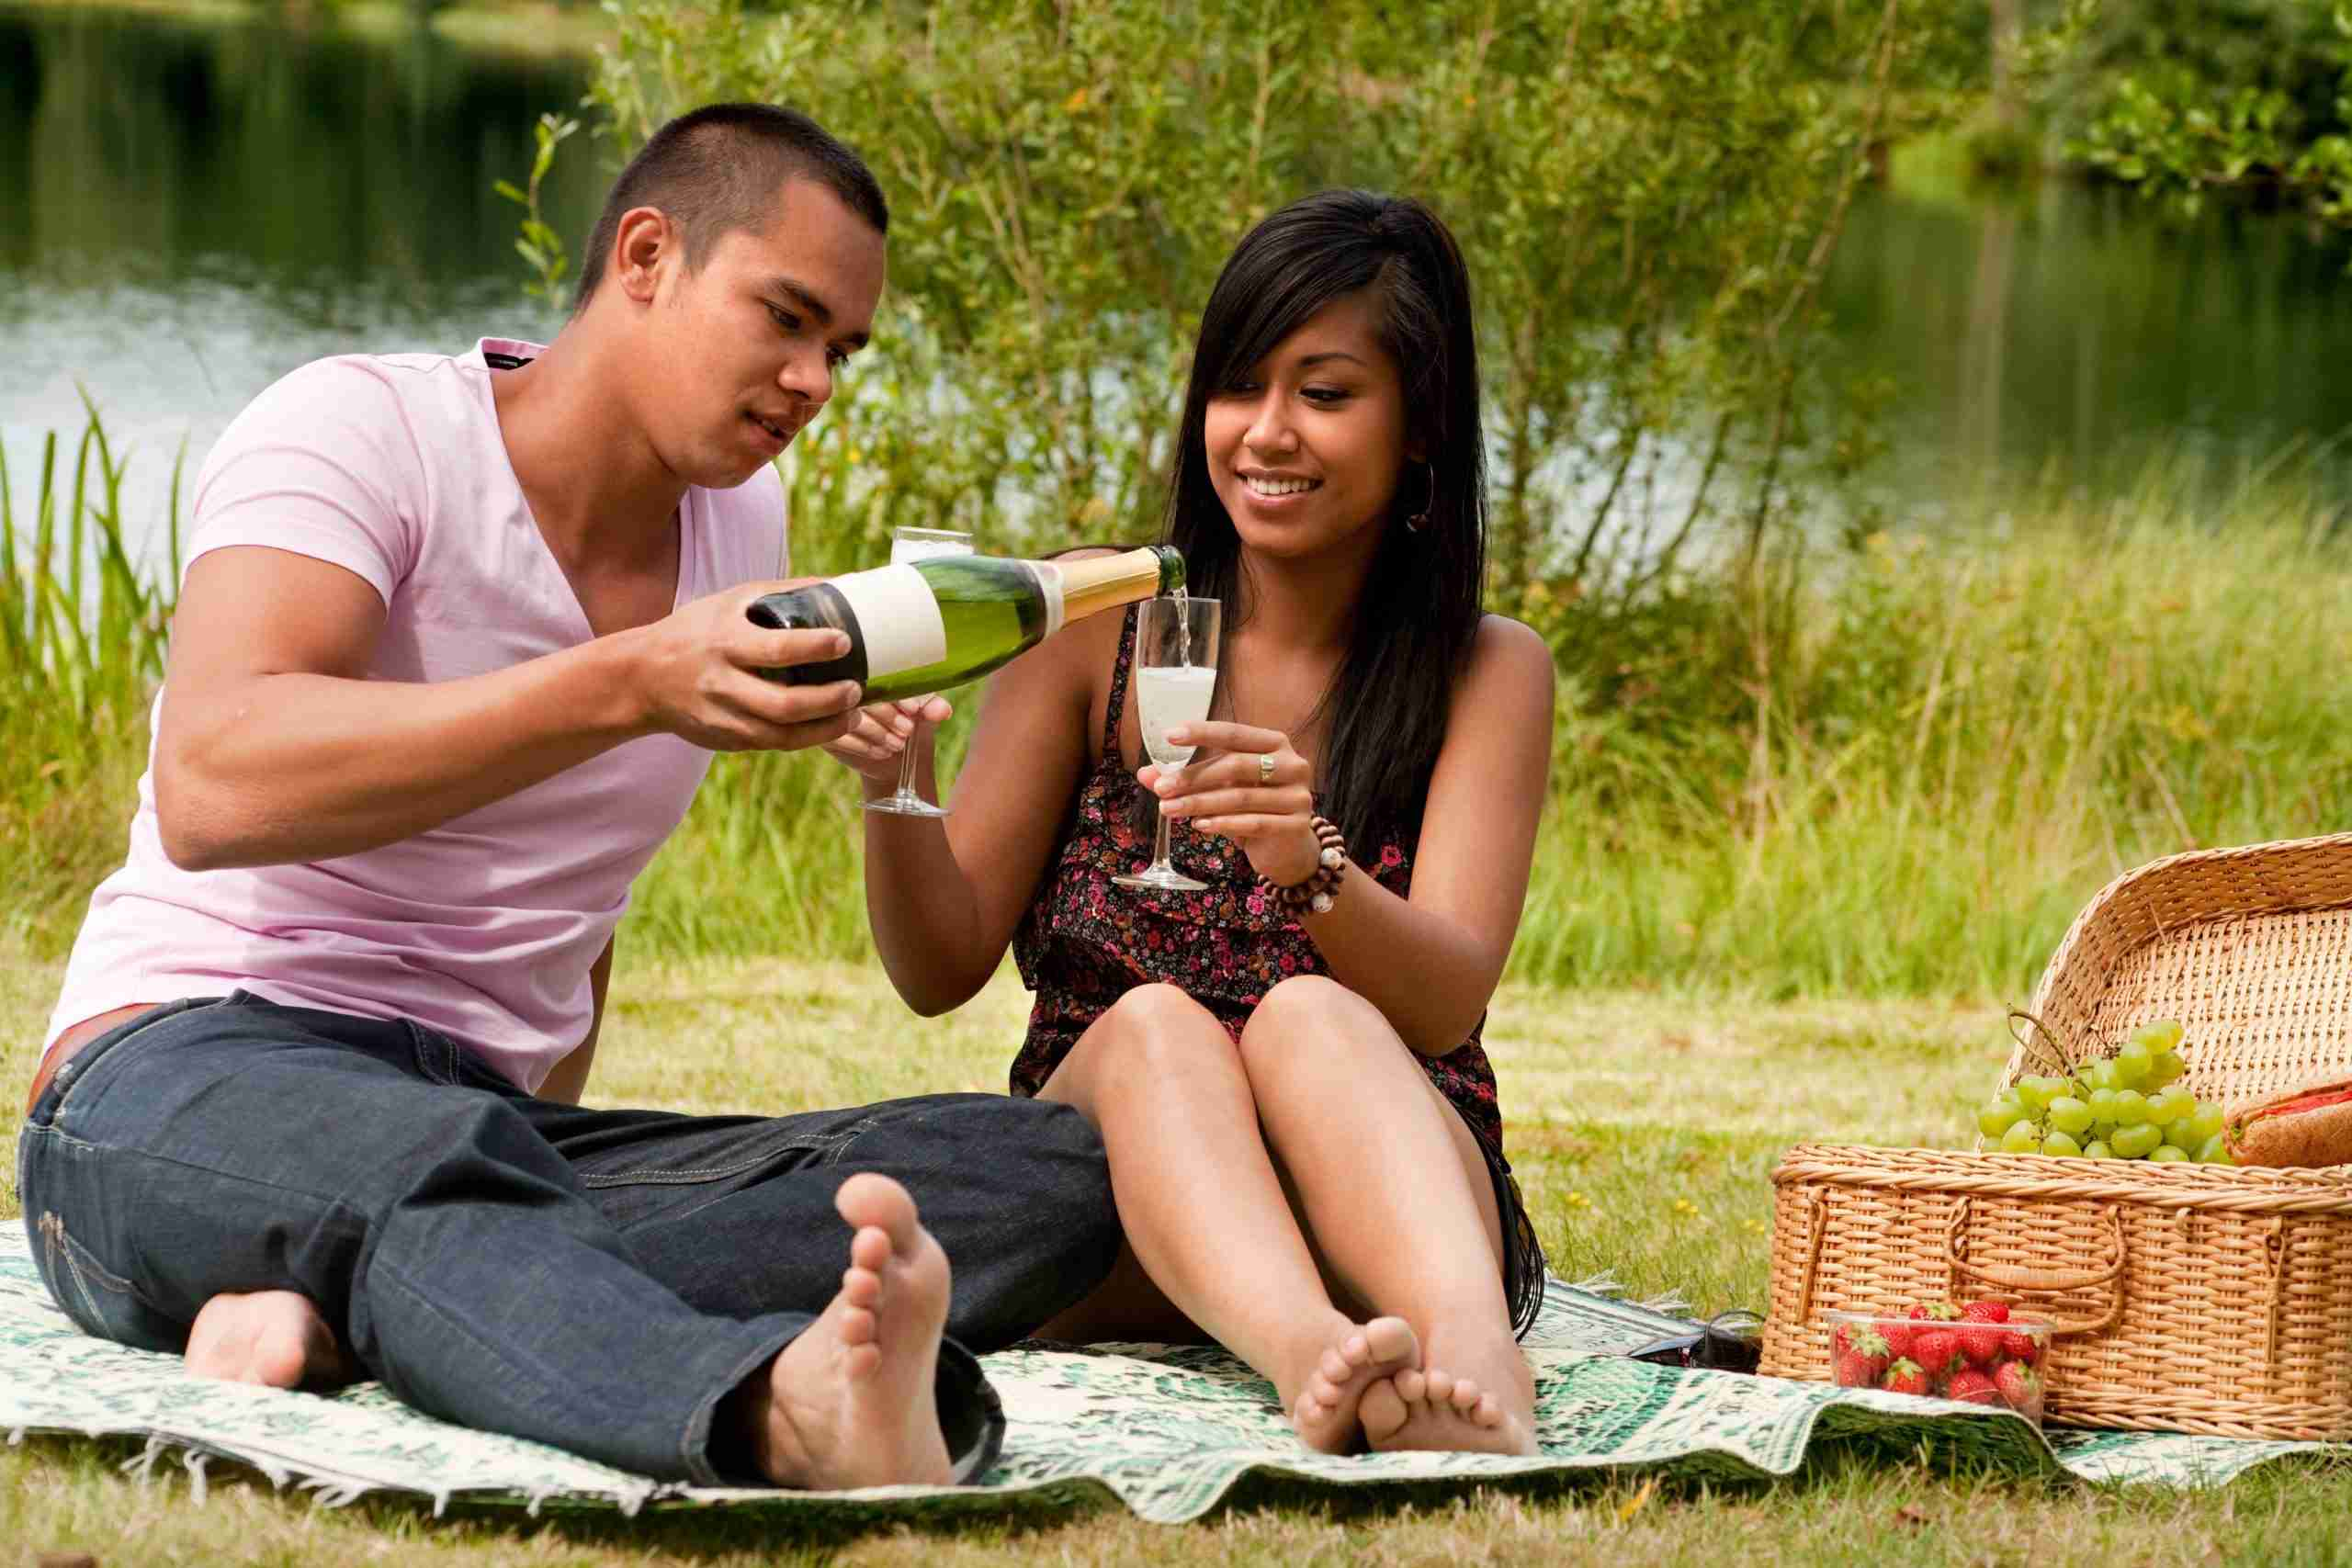 happy couple on picnic date